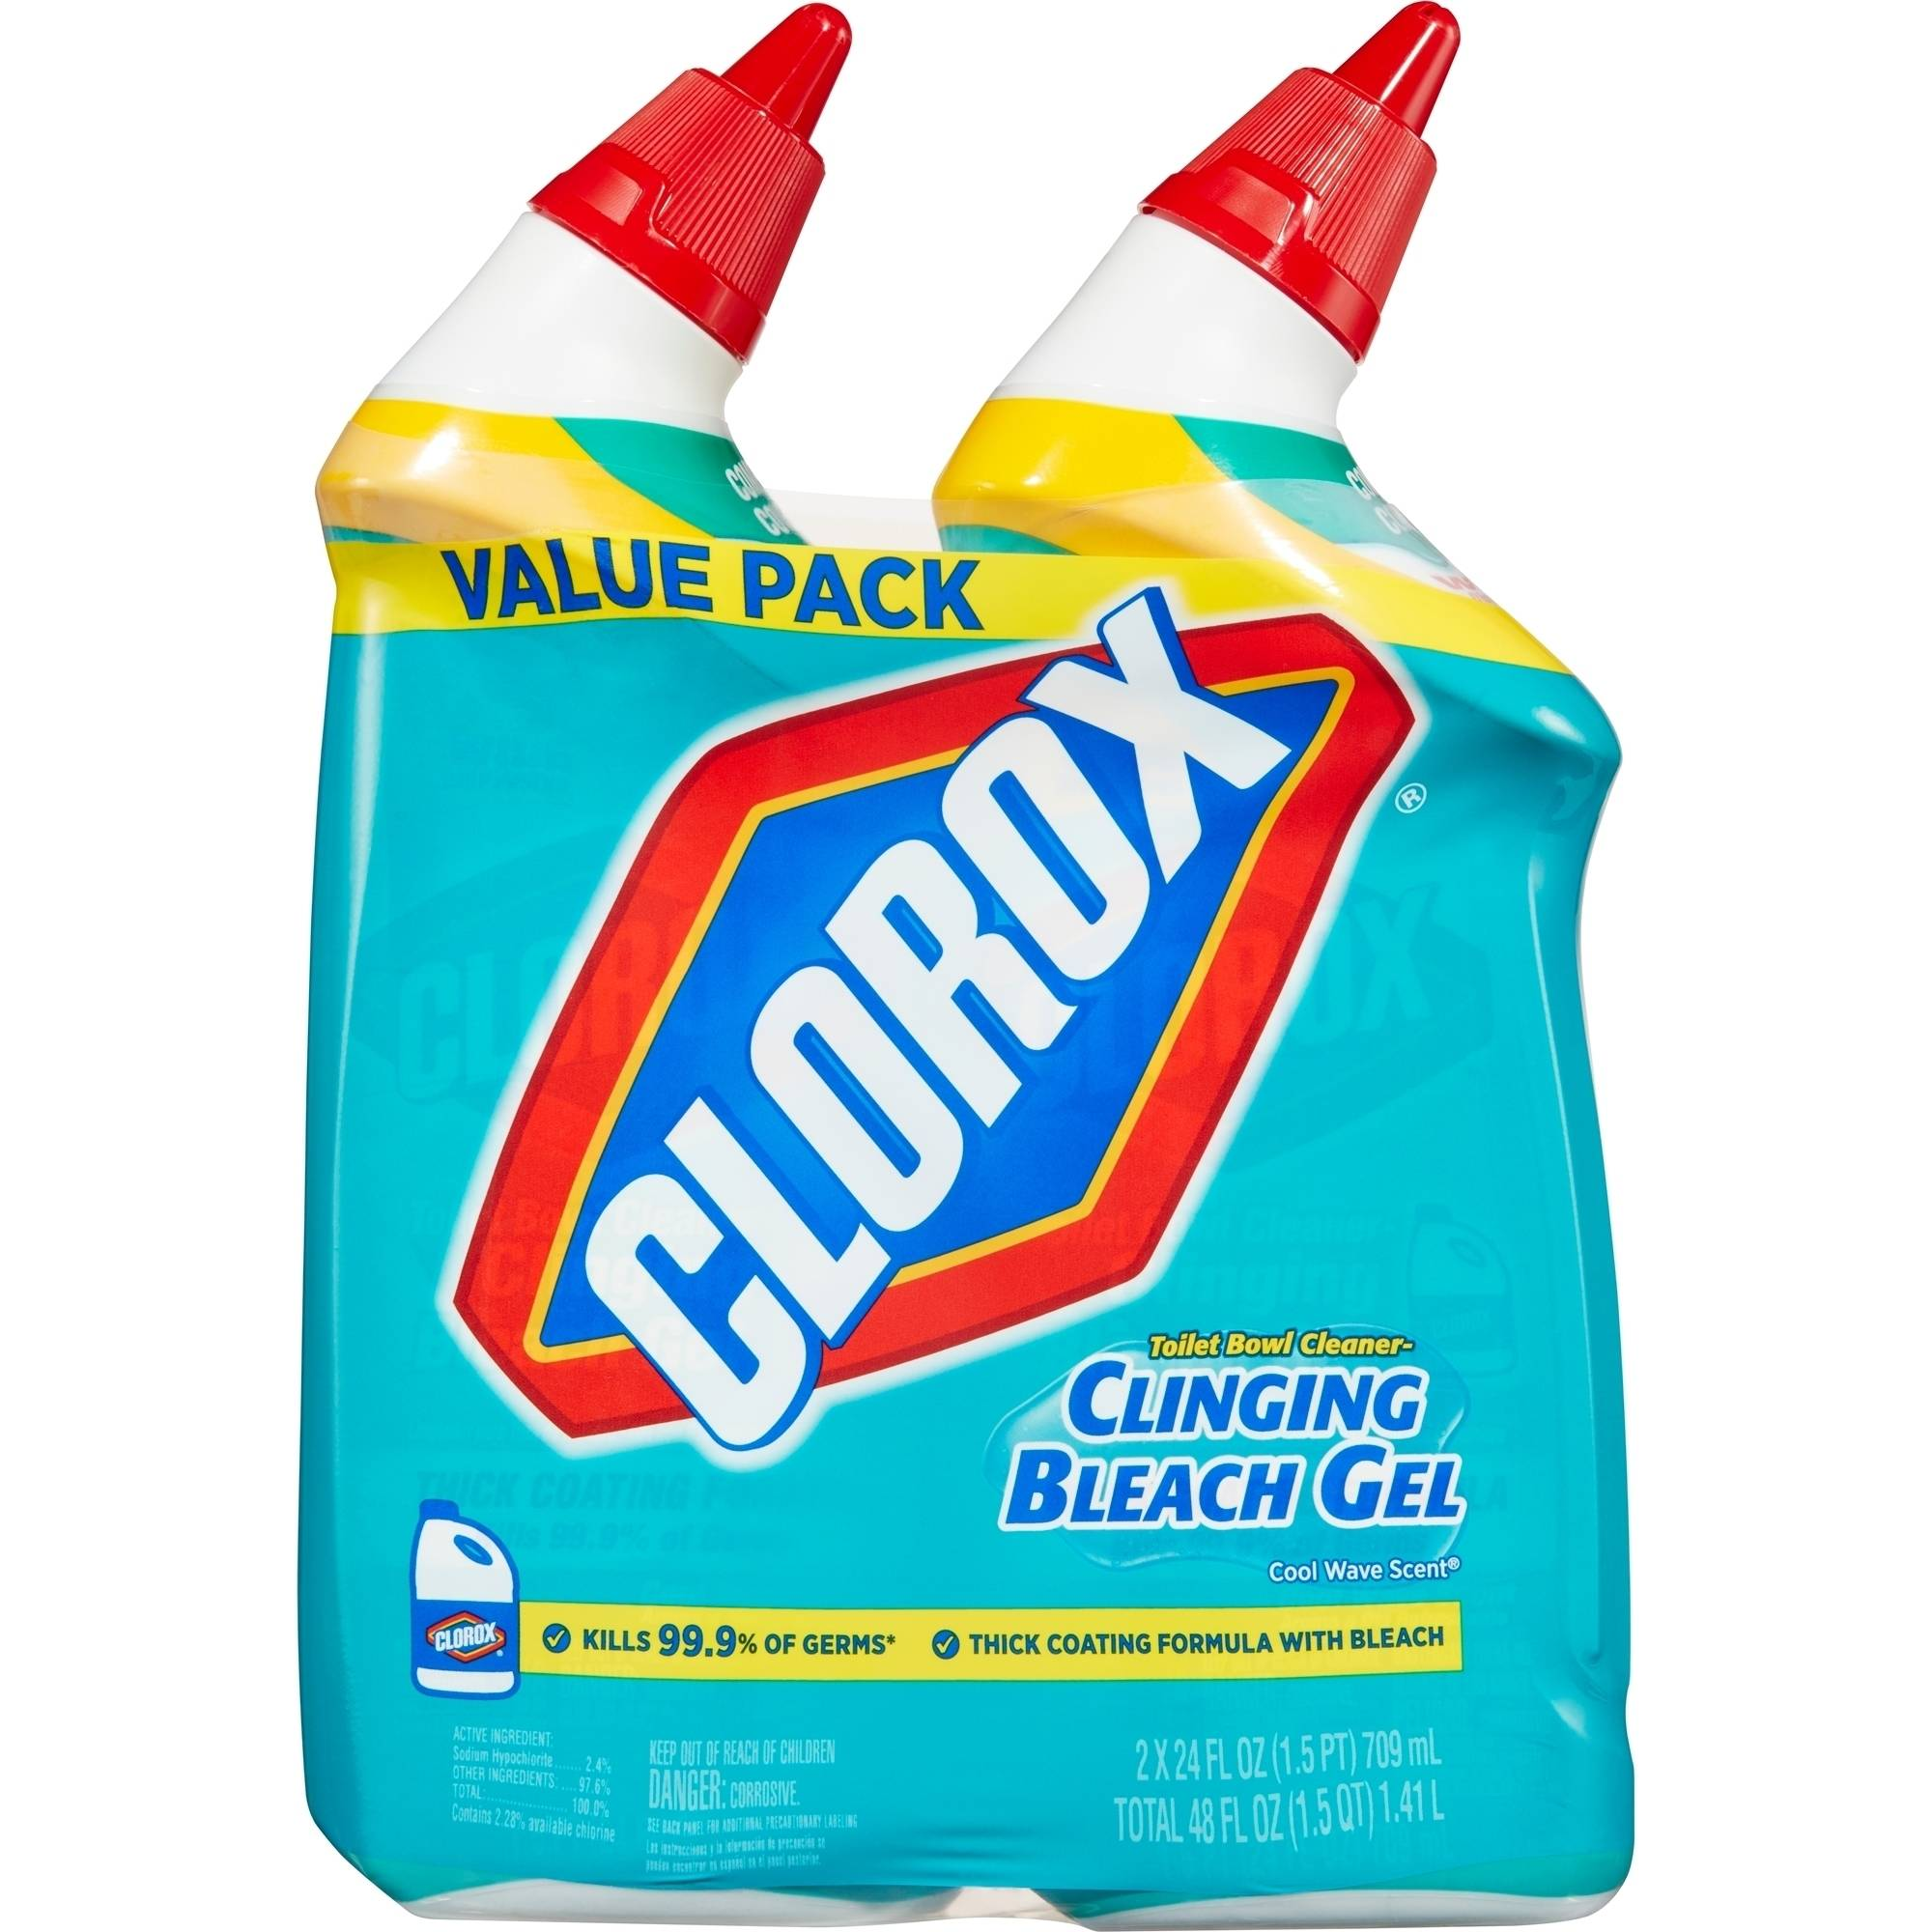 CloroxToilet Bowl Cleaner, Clinging Bleach Gel, 24 Ounces, 2 pack